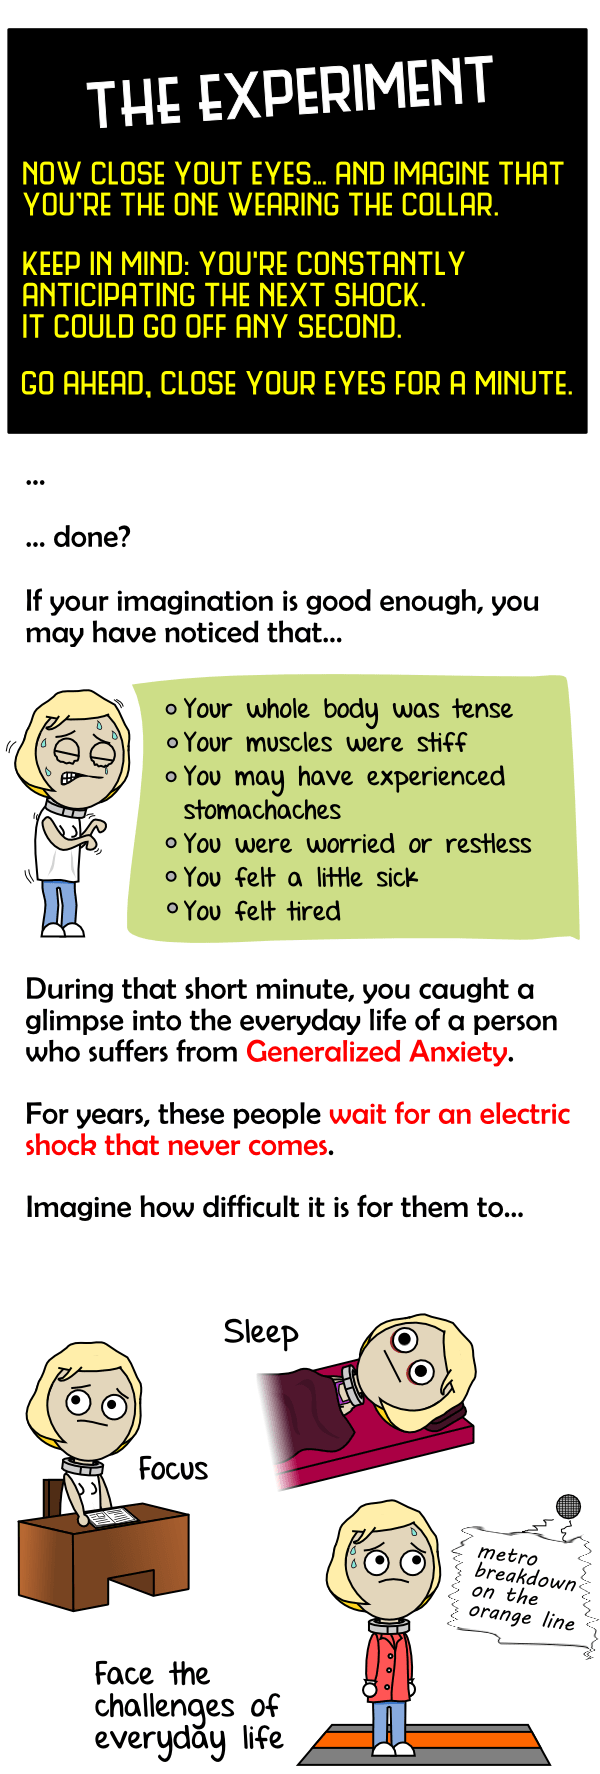 The anxiety thought experiment test